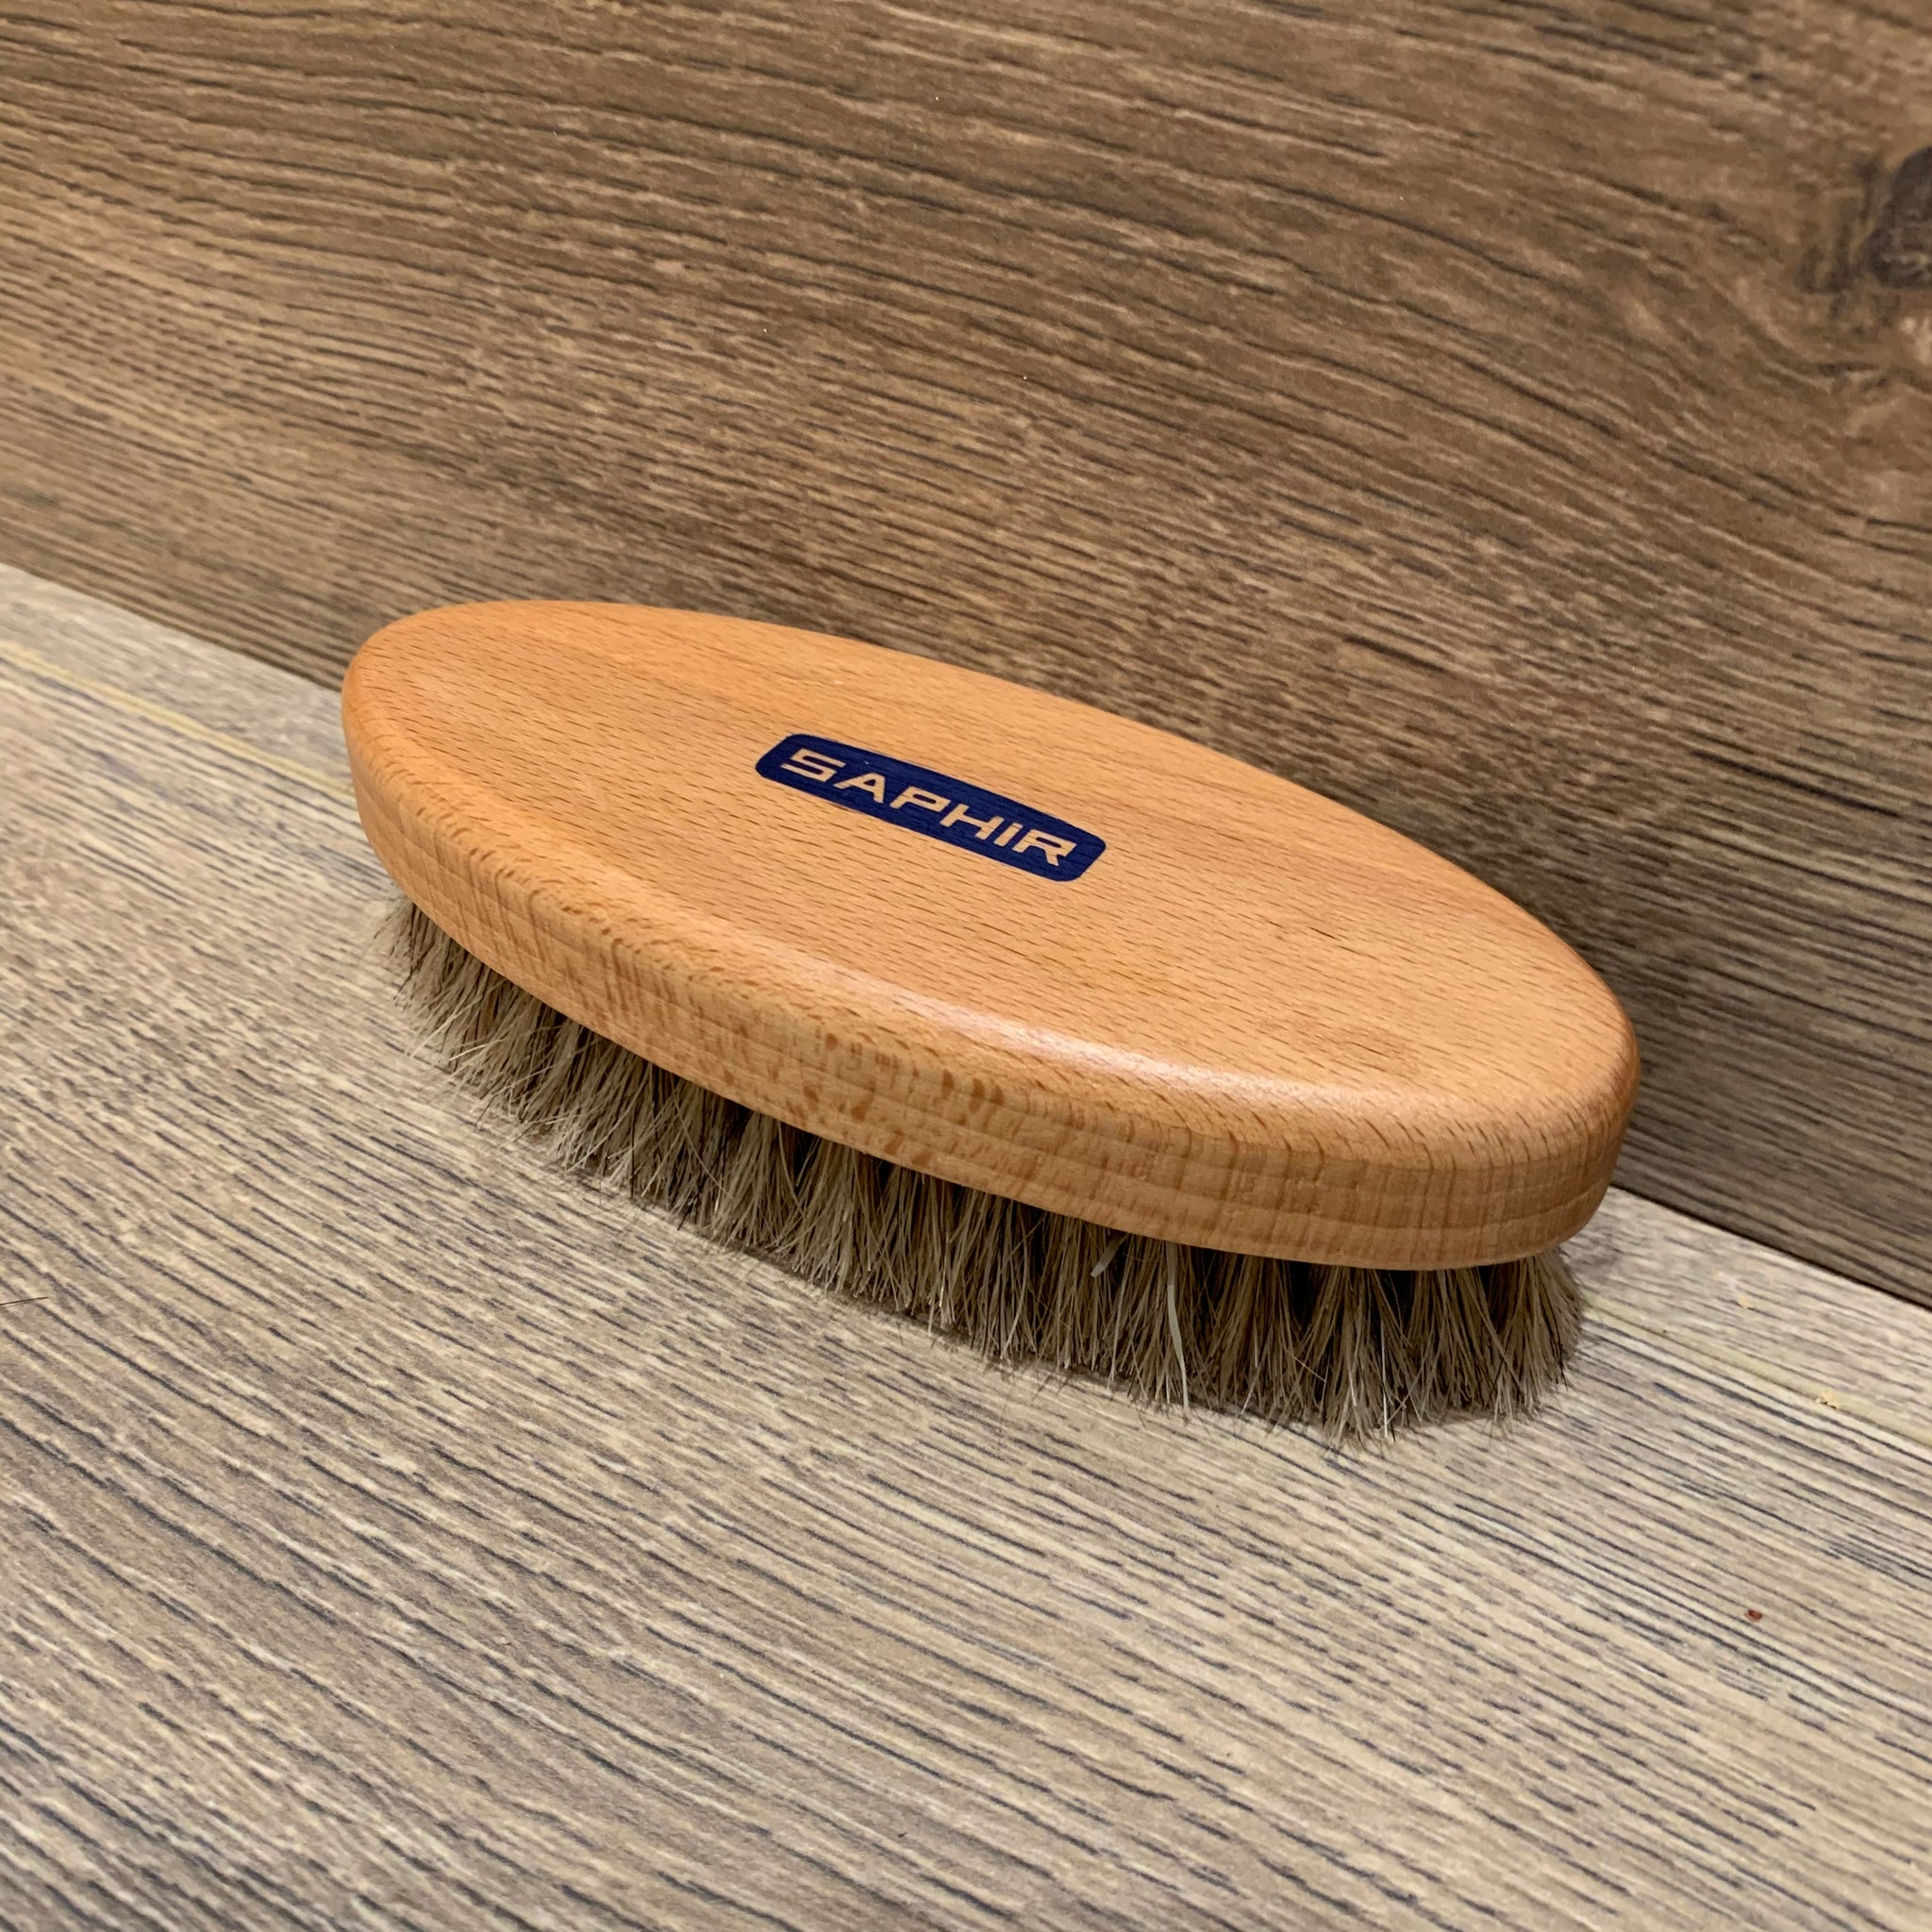 Soft Top Cleaning Brush from Non abrasive horse hair Exterior Sof top remover